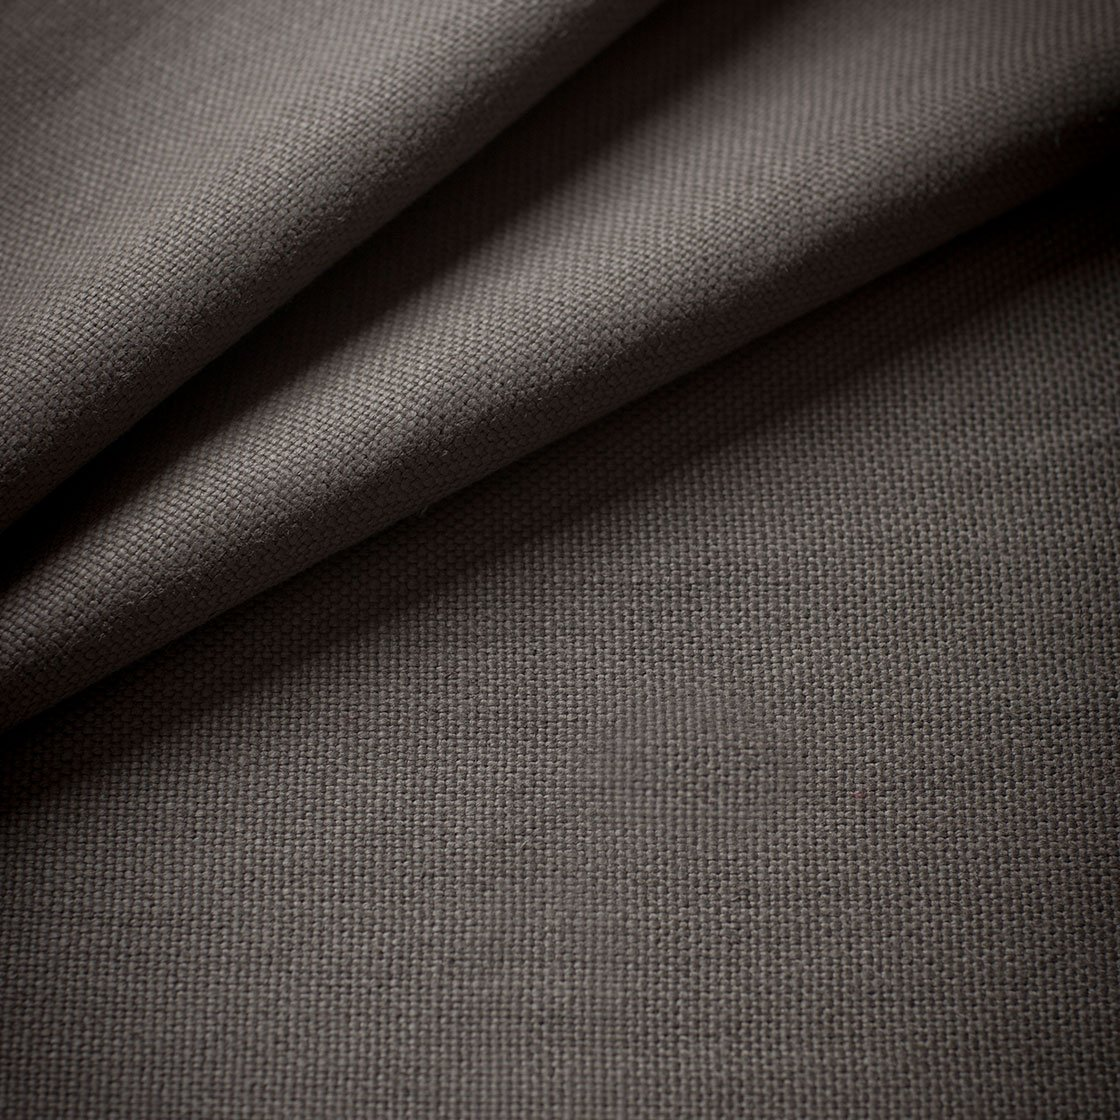 Donegal Linen - Slate - Beaumont & Fletcher - Beaumont & Fletcher